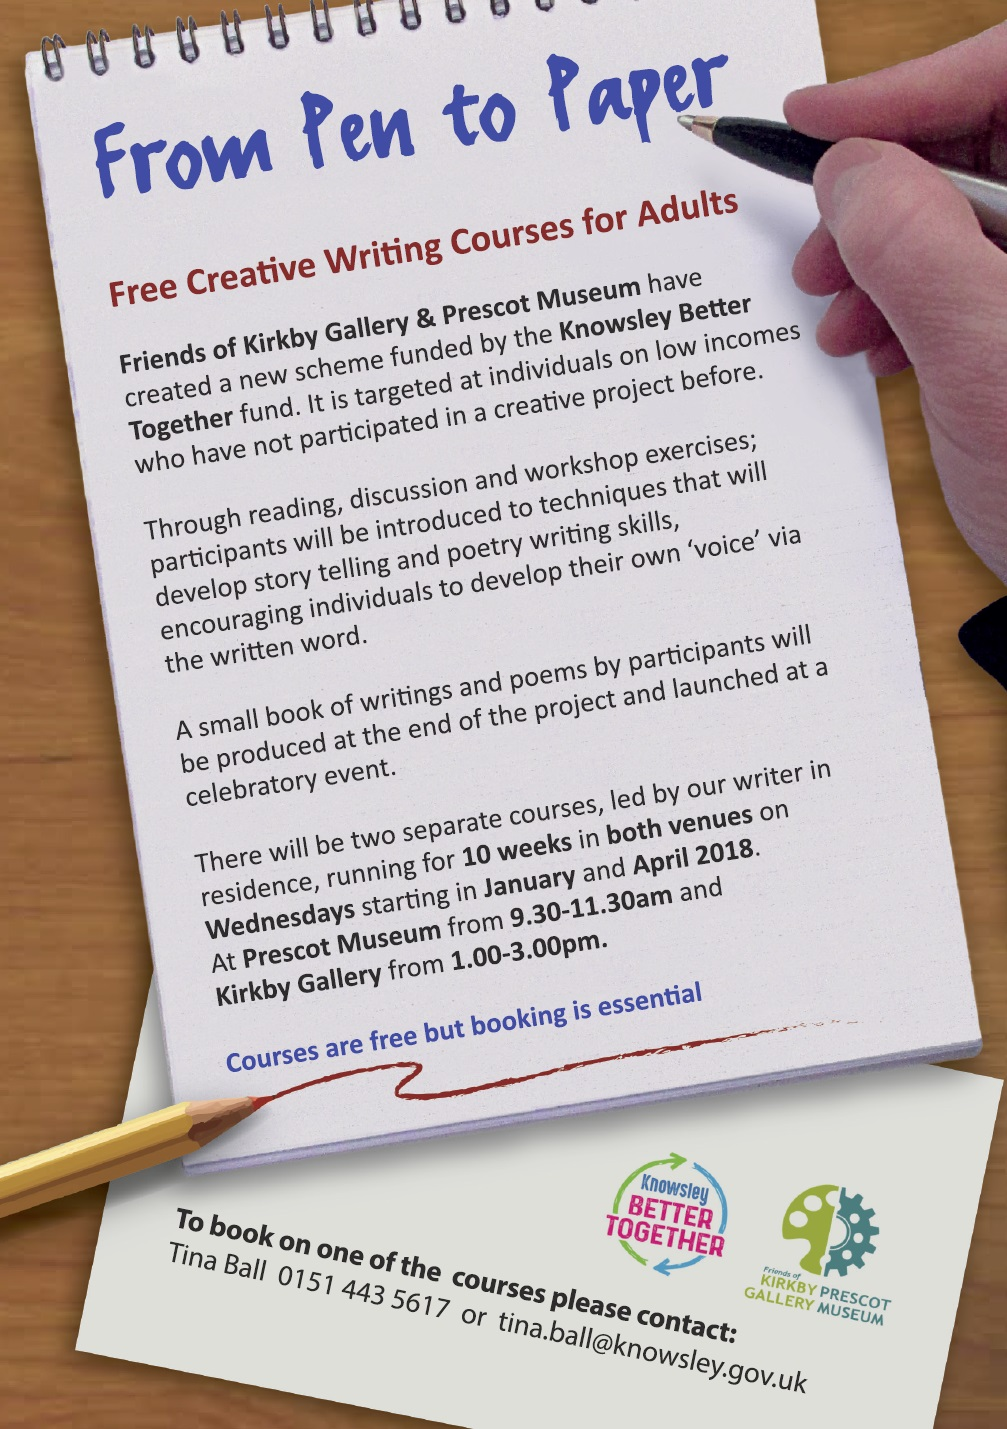 creative writing course online uk Short courses and online courses in creative writing if you're thinking of embarking on further study, or simply want to brush up your skills, our short courses provide the perfect opportunity to dip your toe in the water.